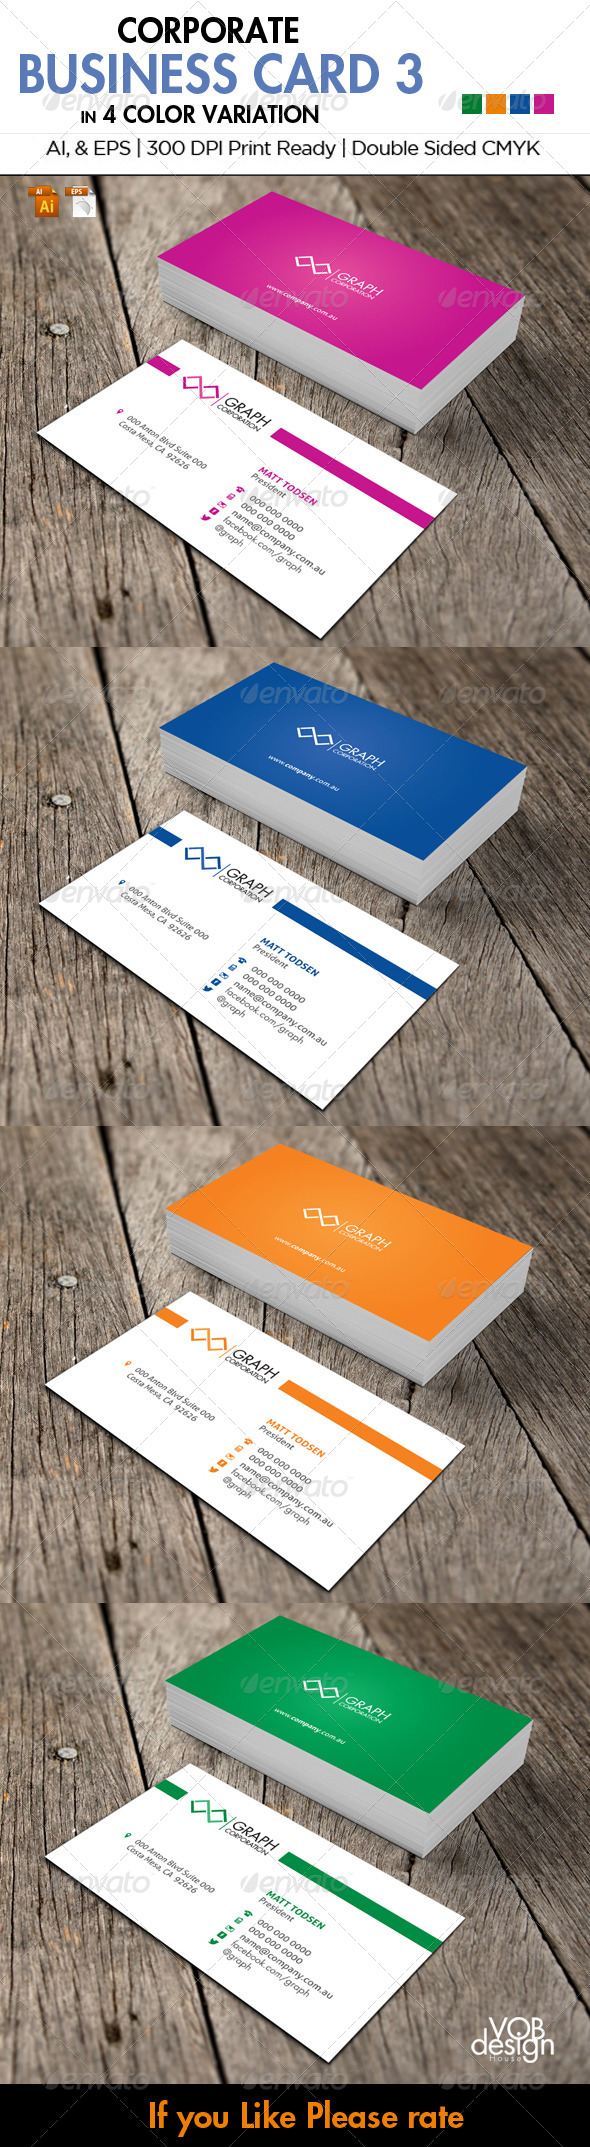 Corporate Business Card 3 - Corporate Business Cards